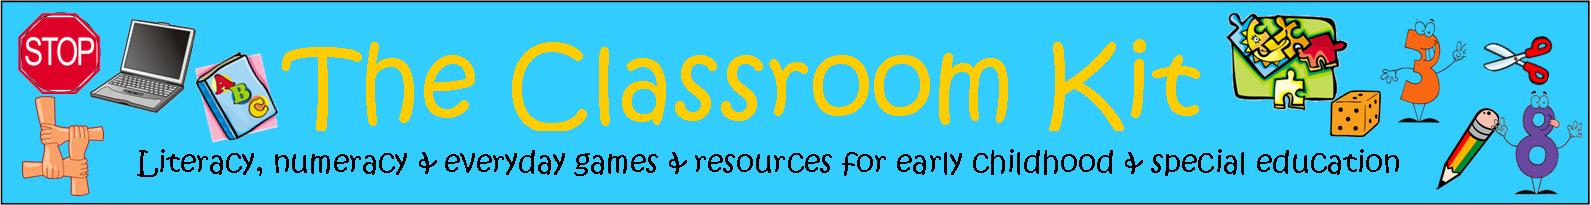 The Classroom Kit Logo